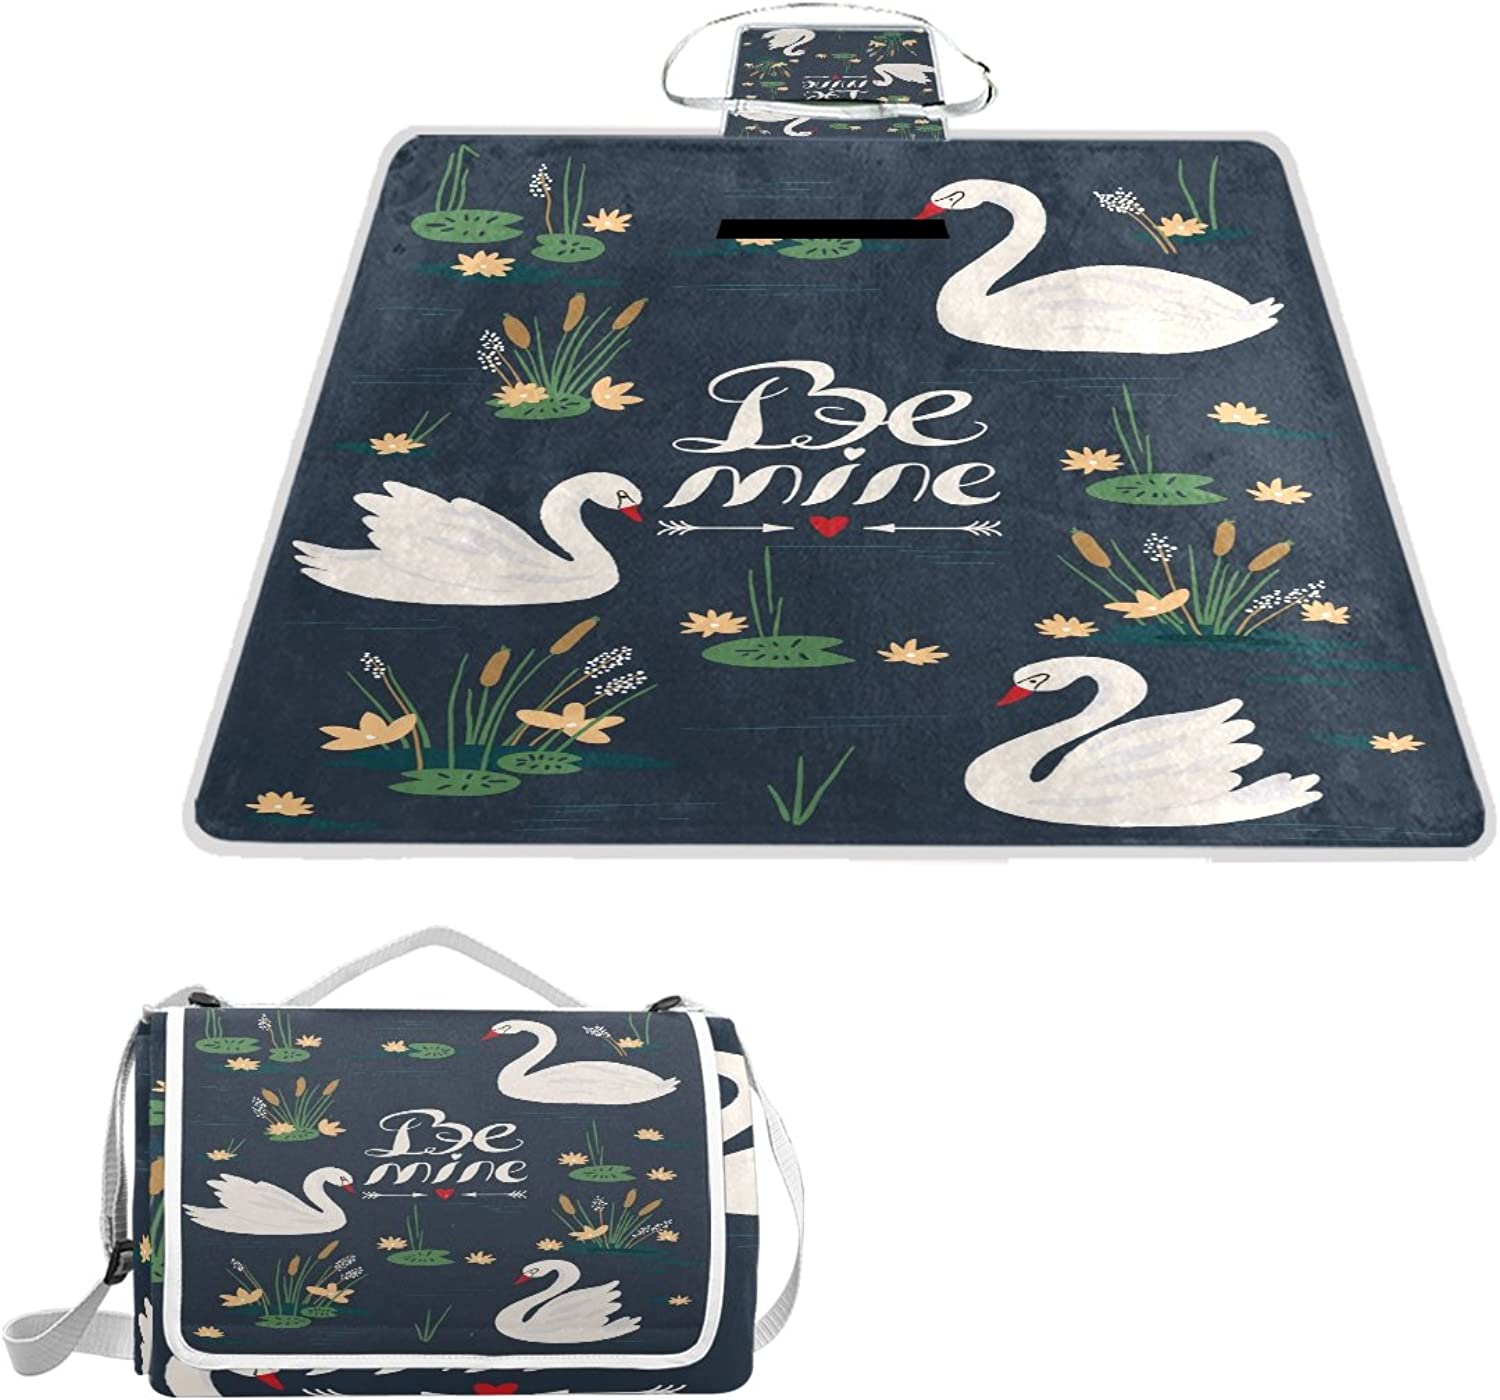 LiKai Picnic Blanket Swans Flowers Foldable Portable Waterproof Outdoor Travelling Camping Beach Mat